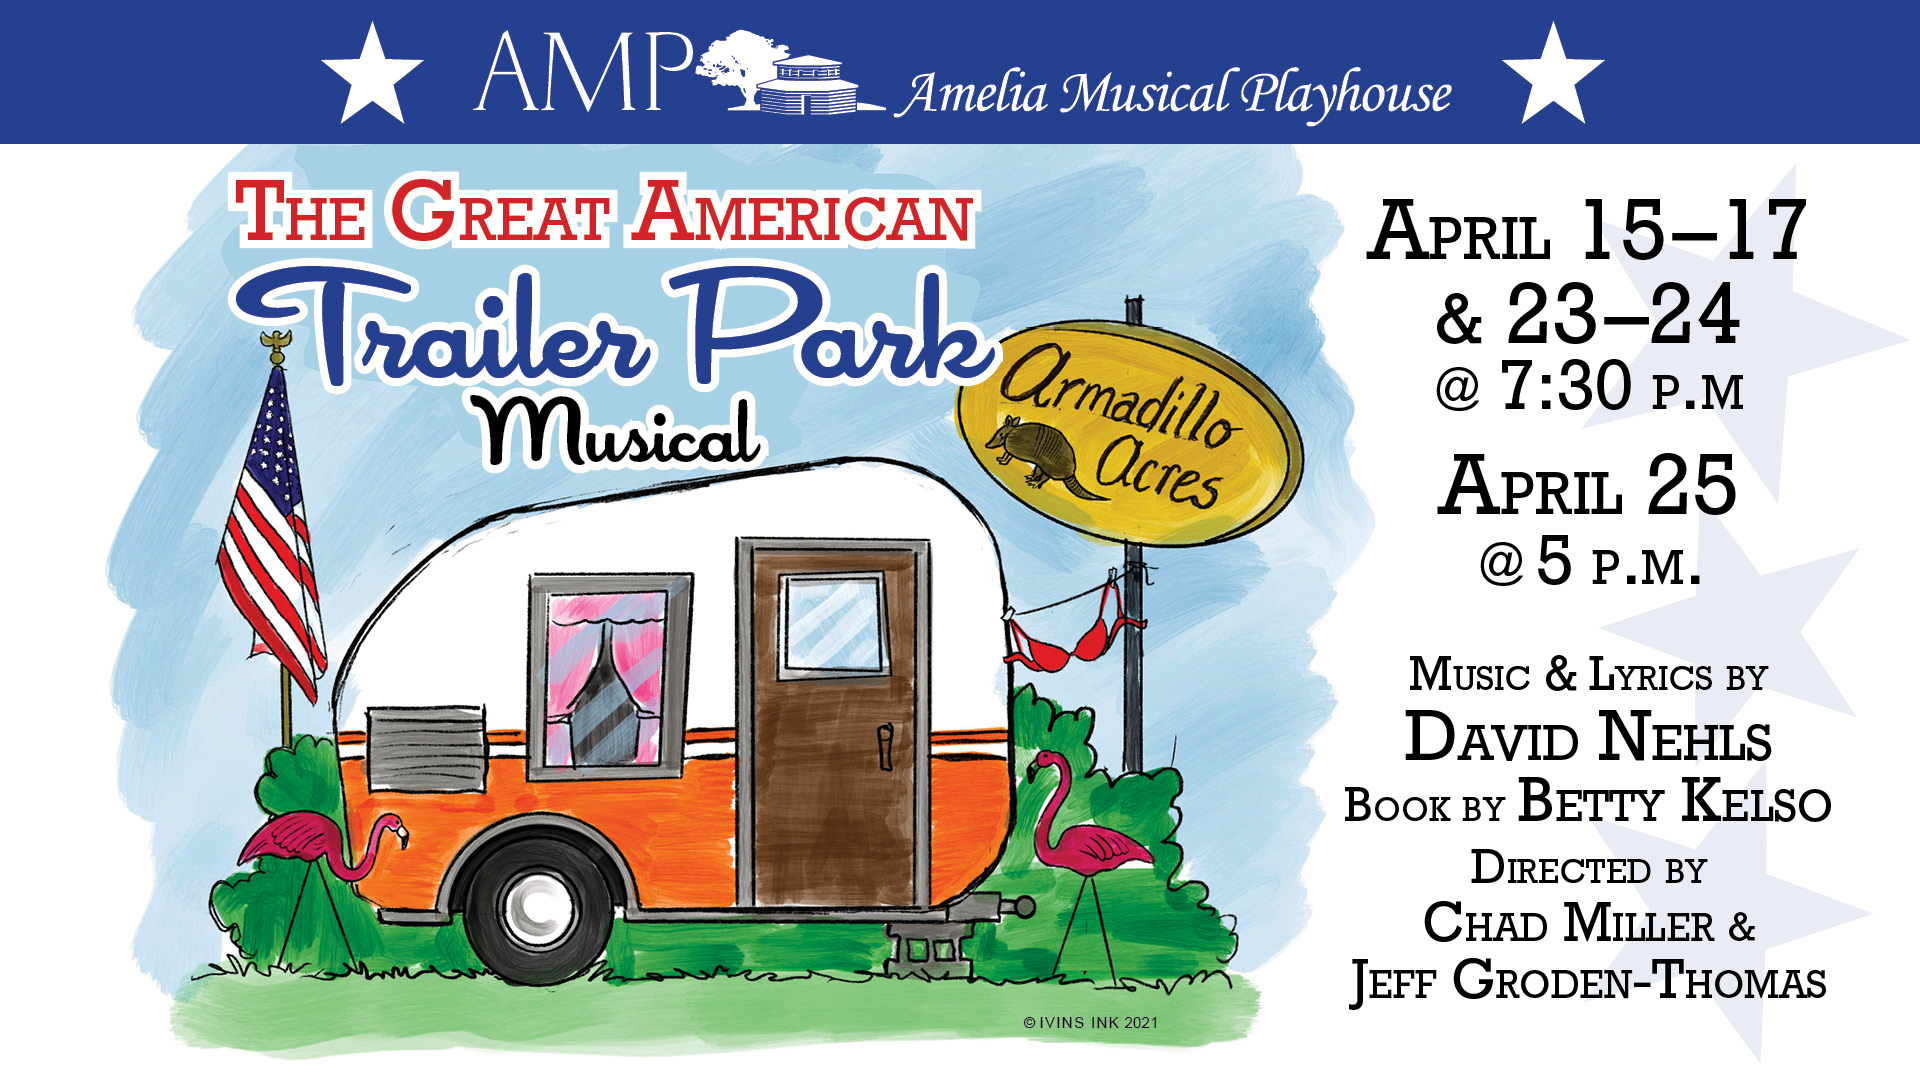 Thumbnail for The Great American Trailer Park Musical